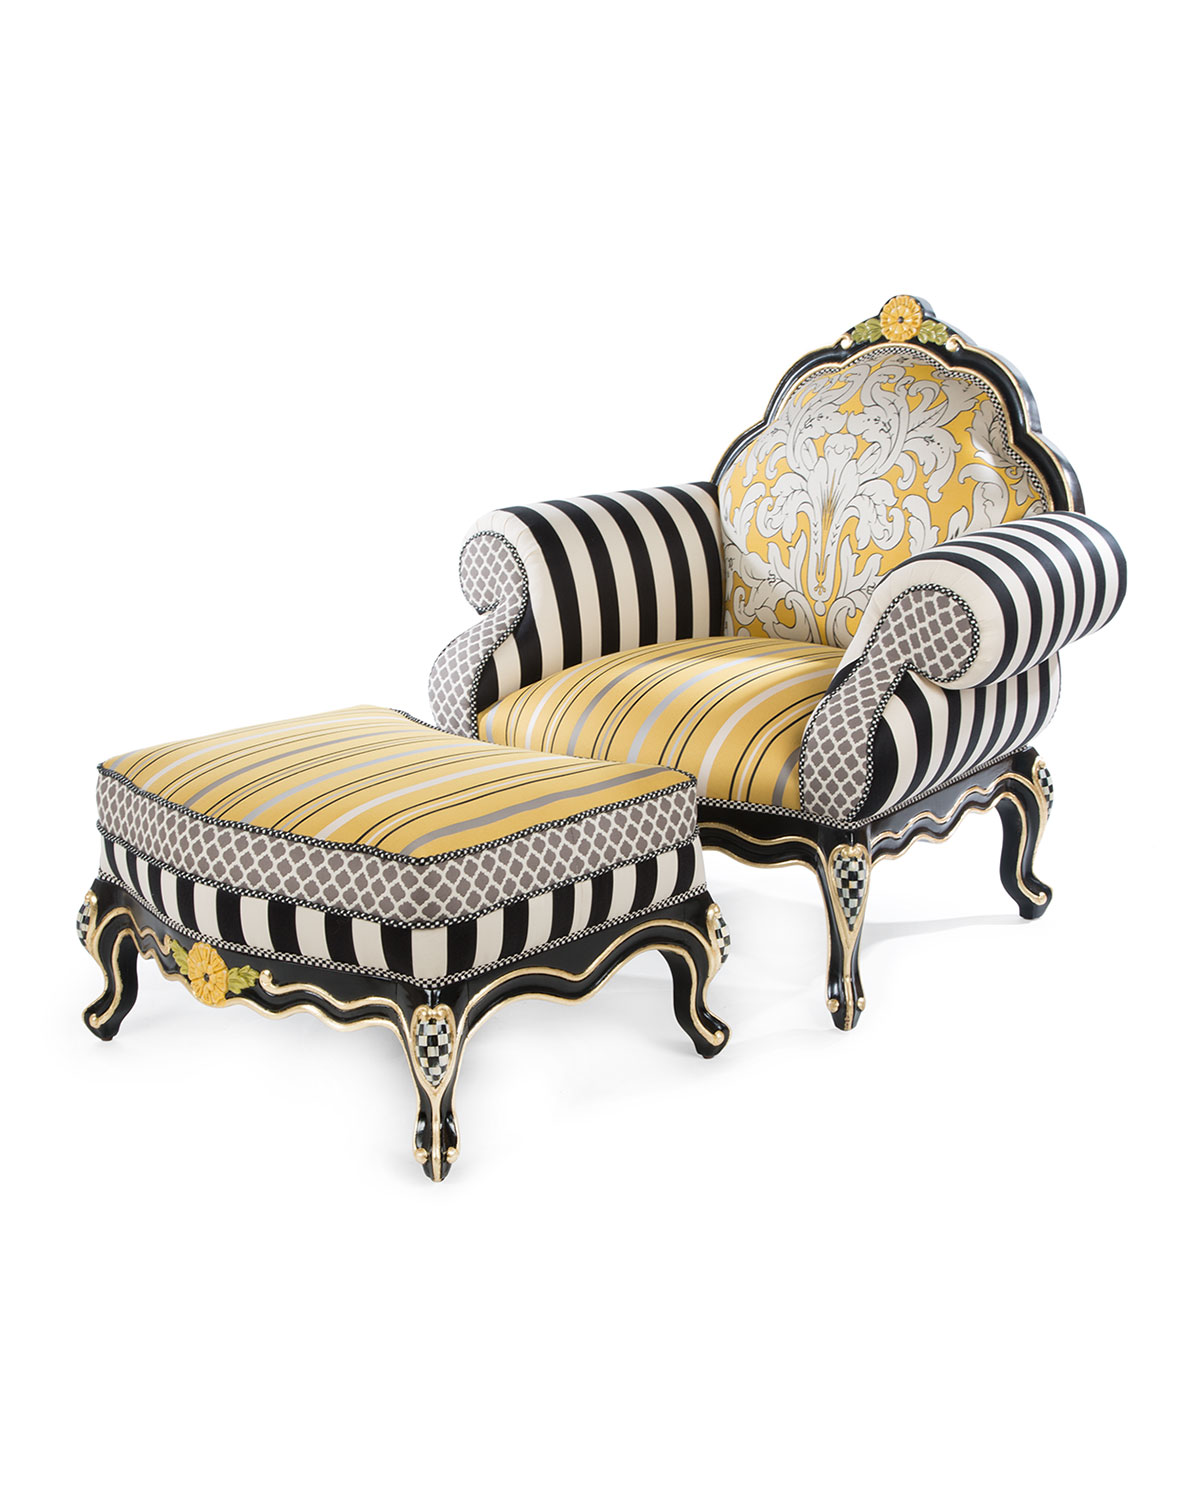 jonathan adler milano wing chair neiman marcus. Black Bedroom Furniture Sets. Home Design Ideas